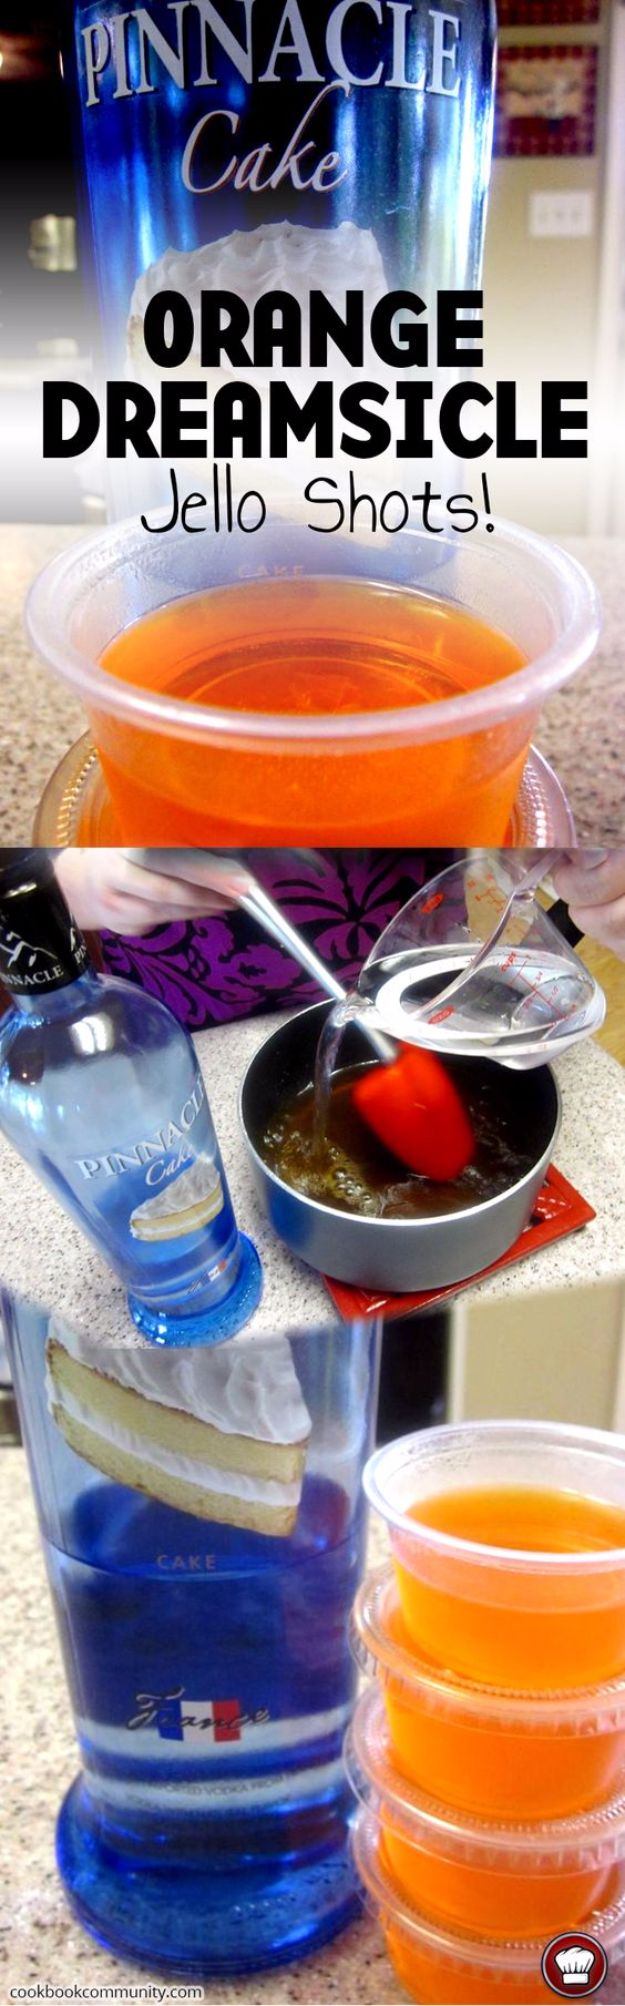 Best Jello Shot Recipes - Orange Dreamsicle Jello Shots - Easy Jello Shots Recipe Ideas with Vodka, Strawberry, Tequila, Rum, Jolly Rancher and Creative Alcohol - Unique and Fun Drinks for Parties like Whiskey Fireball, Fall Halloween Versions, Malibu, 4th of July, Birthday, Summer, Christmas and Birthdays #jelloshots #partydrinks #drinkrecipes